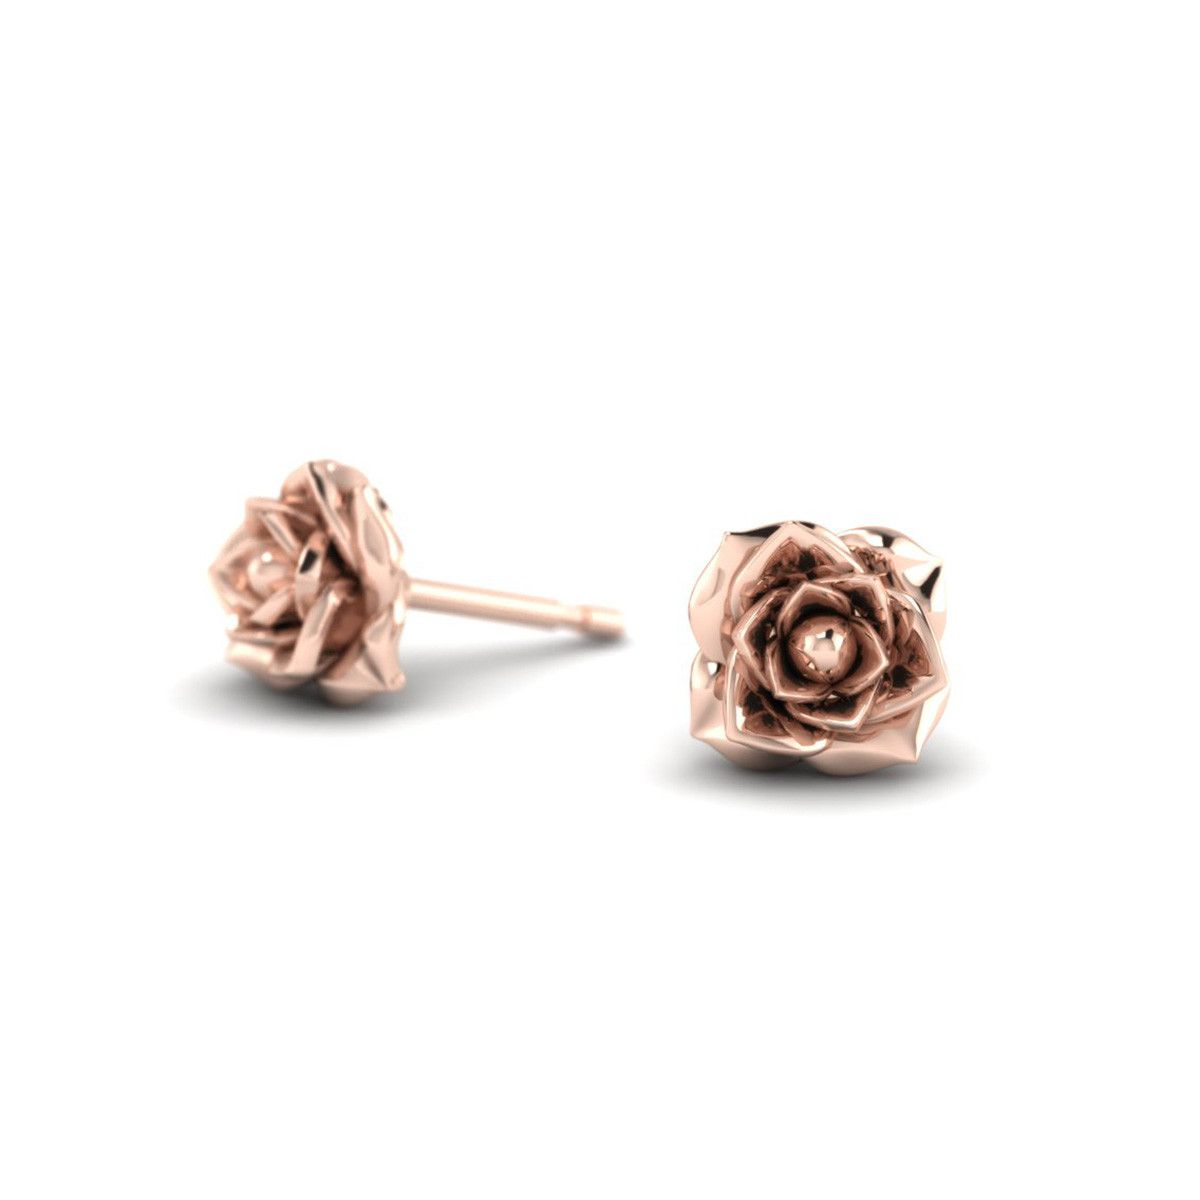 Rose Gold Earrings Studs Whole Stainless Steel Rose Gold ...